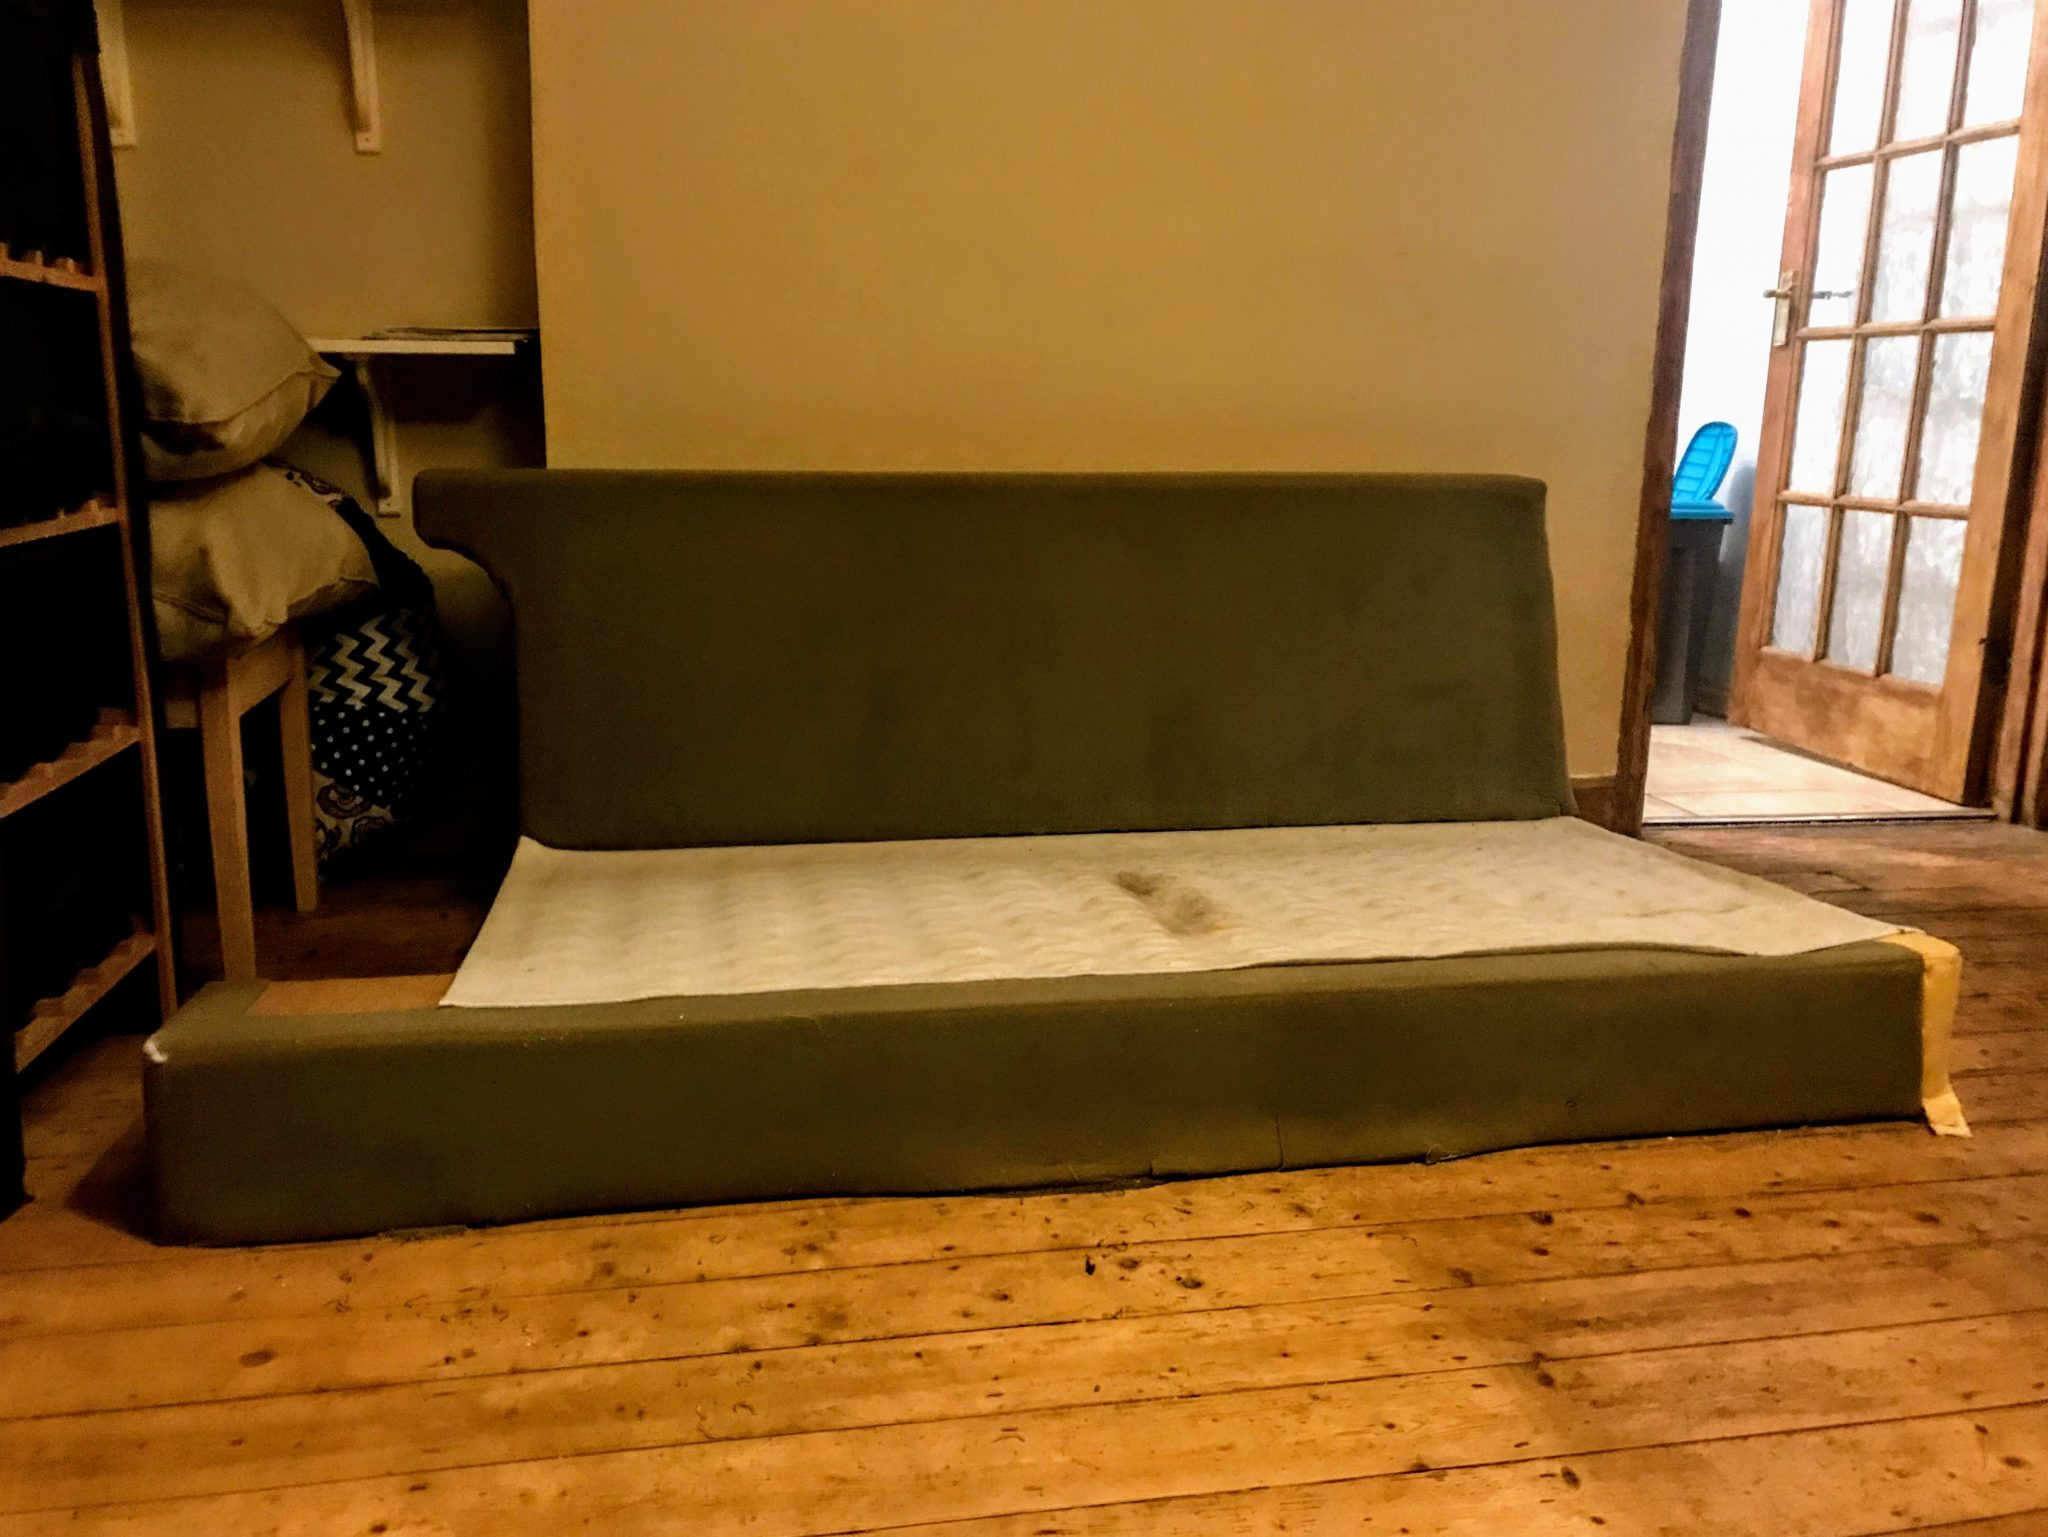 Sofa frame with foam covering